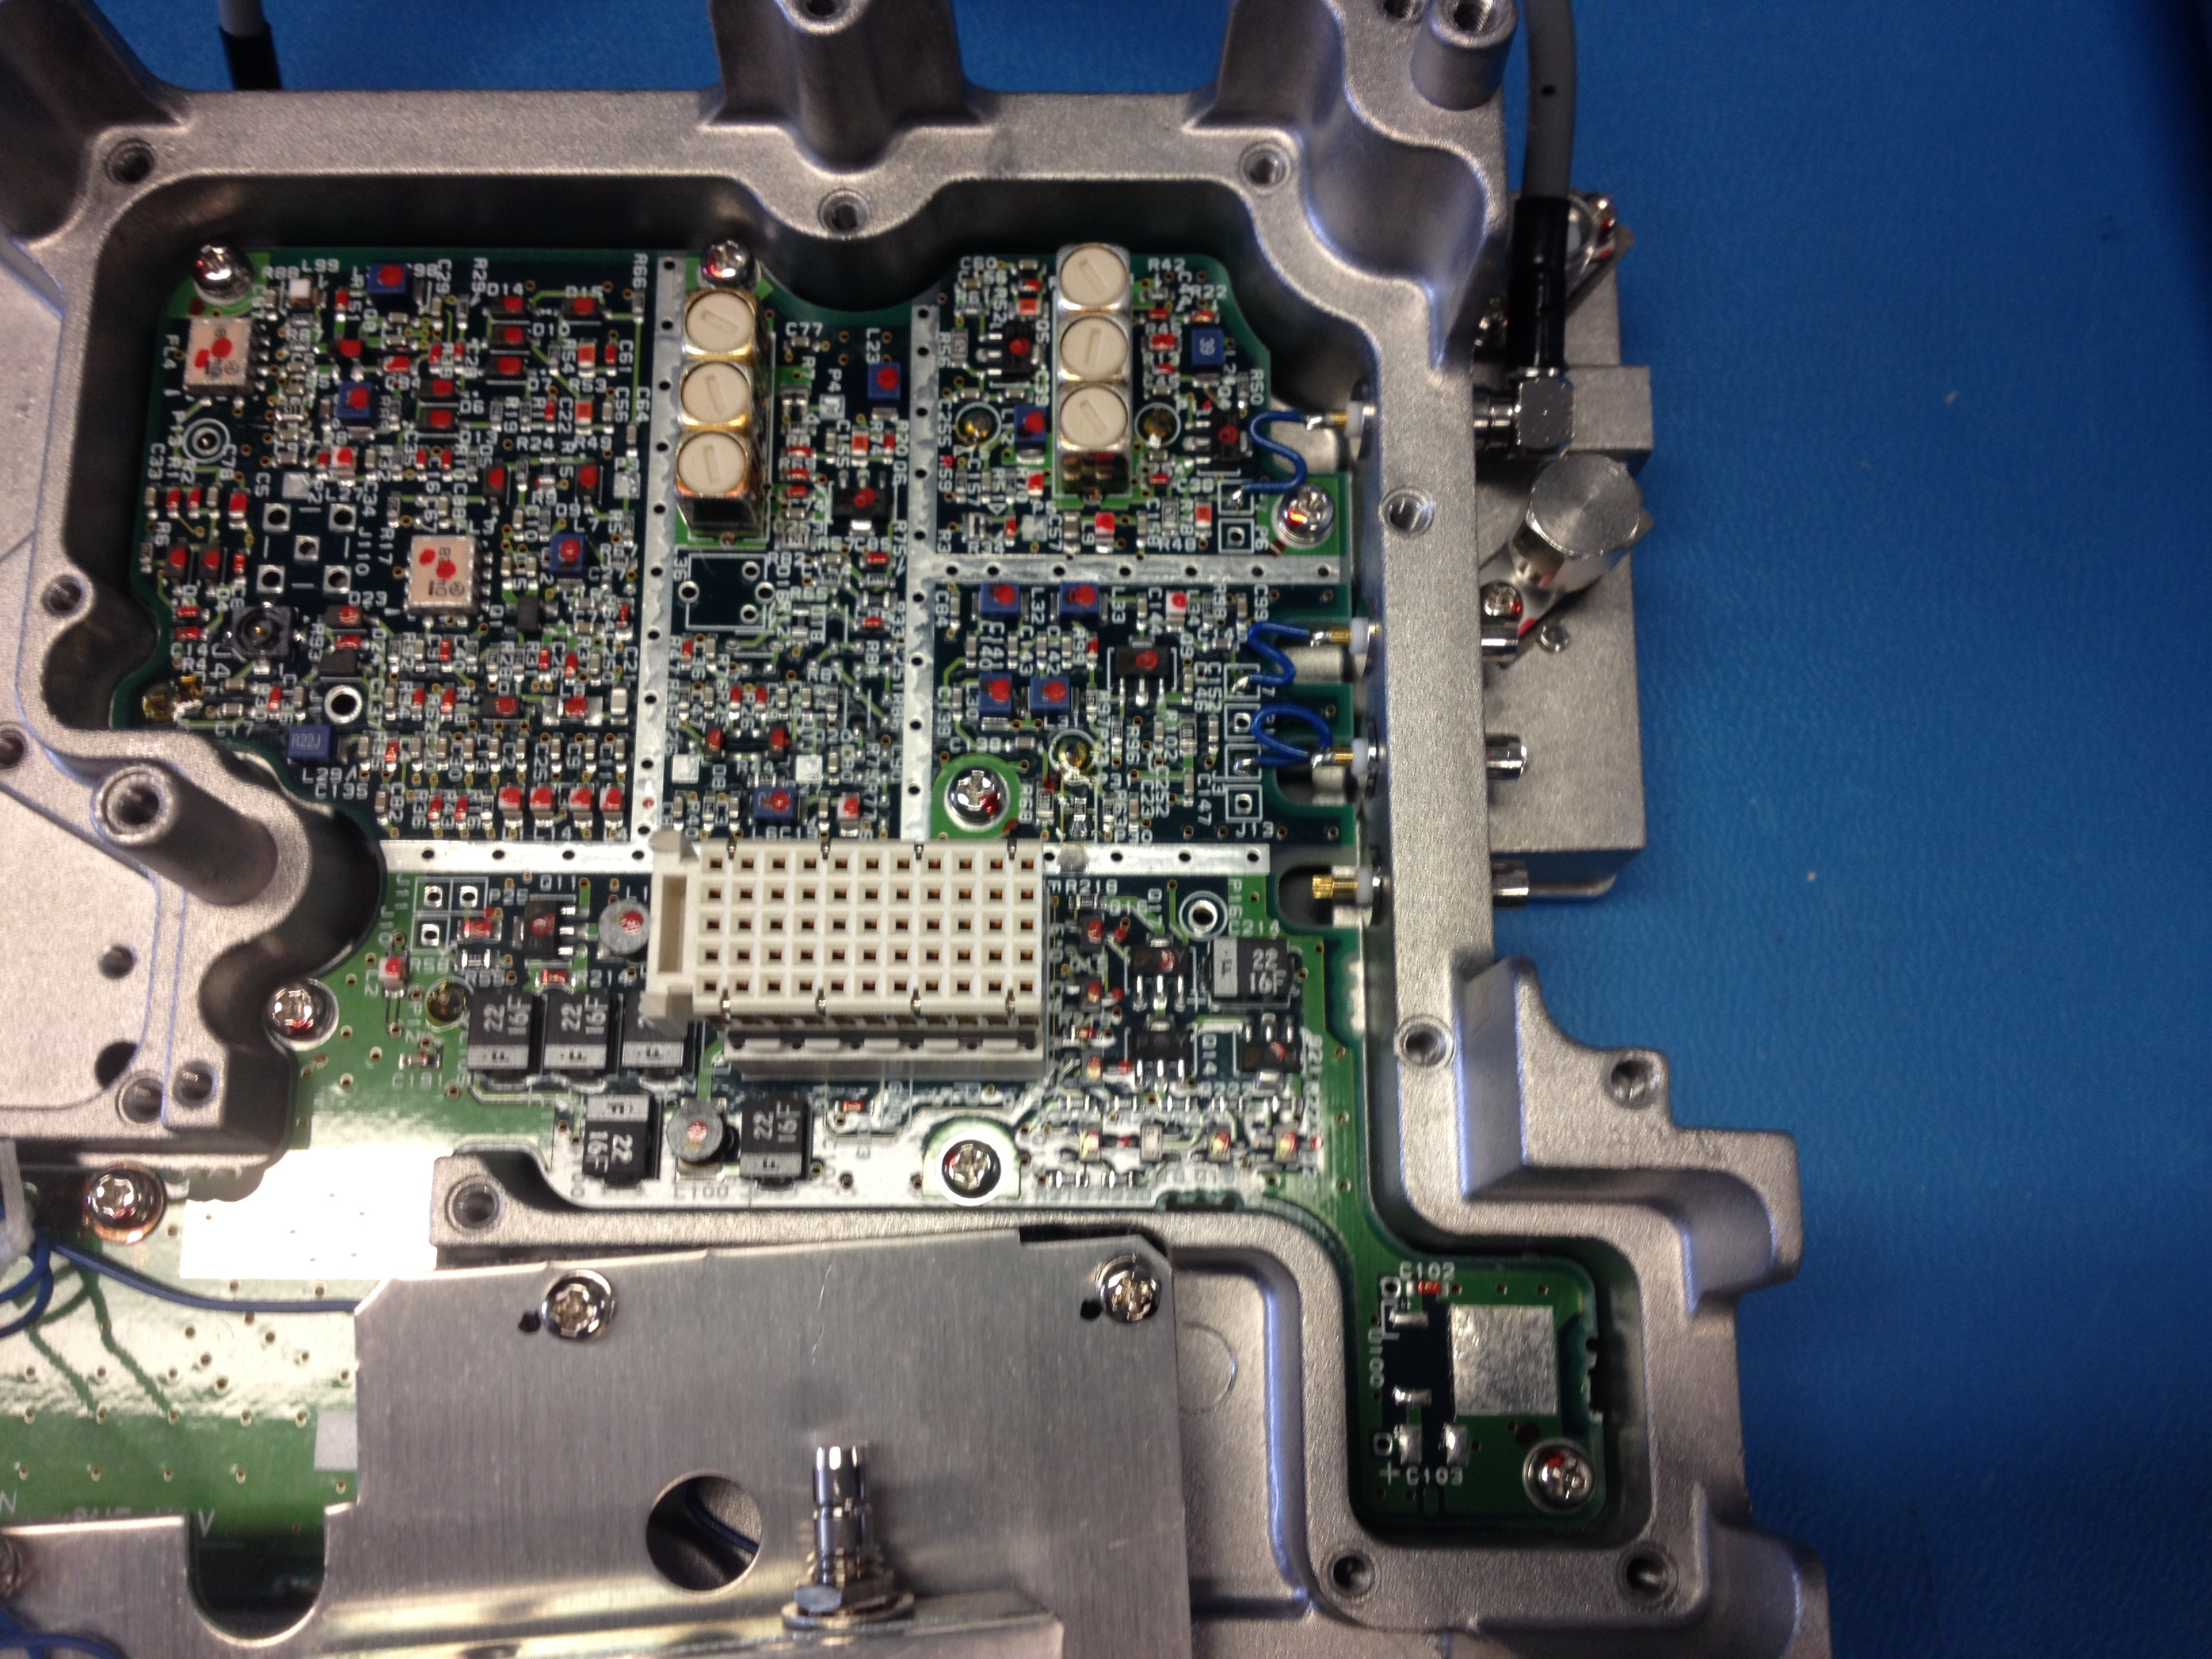 Shots of the circuits on the back side of the RF board